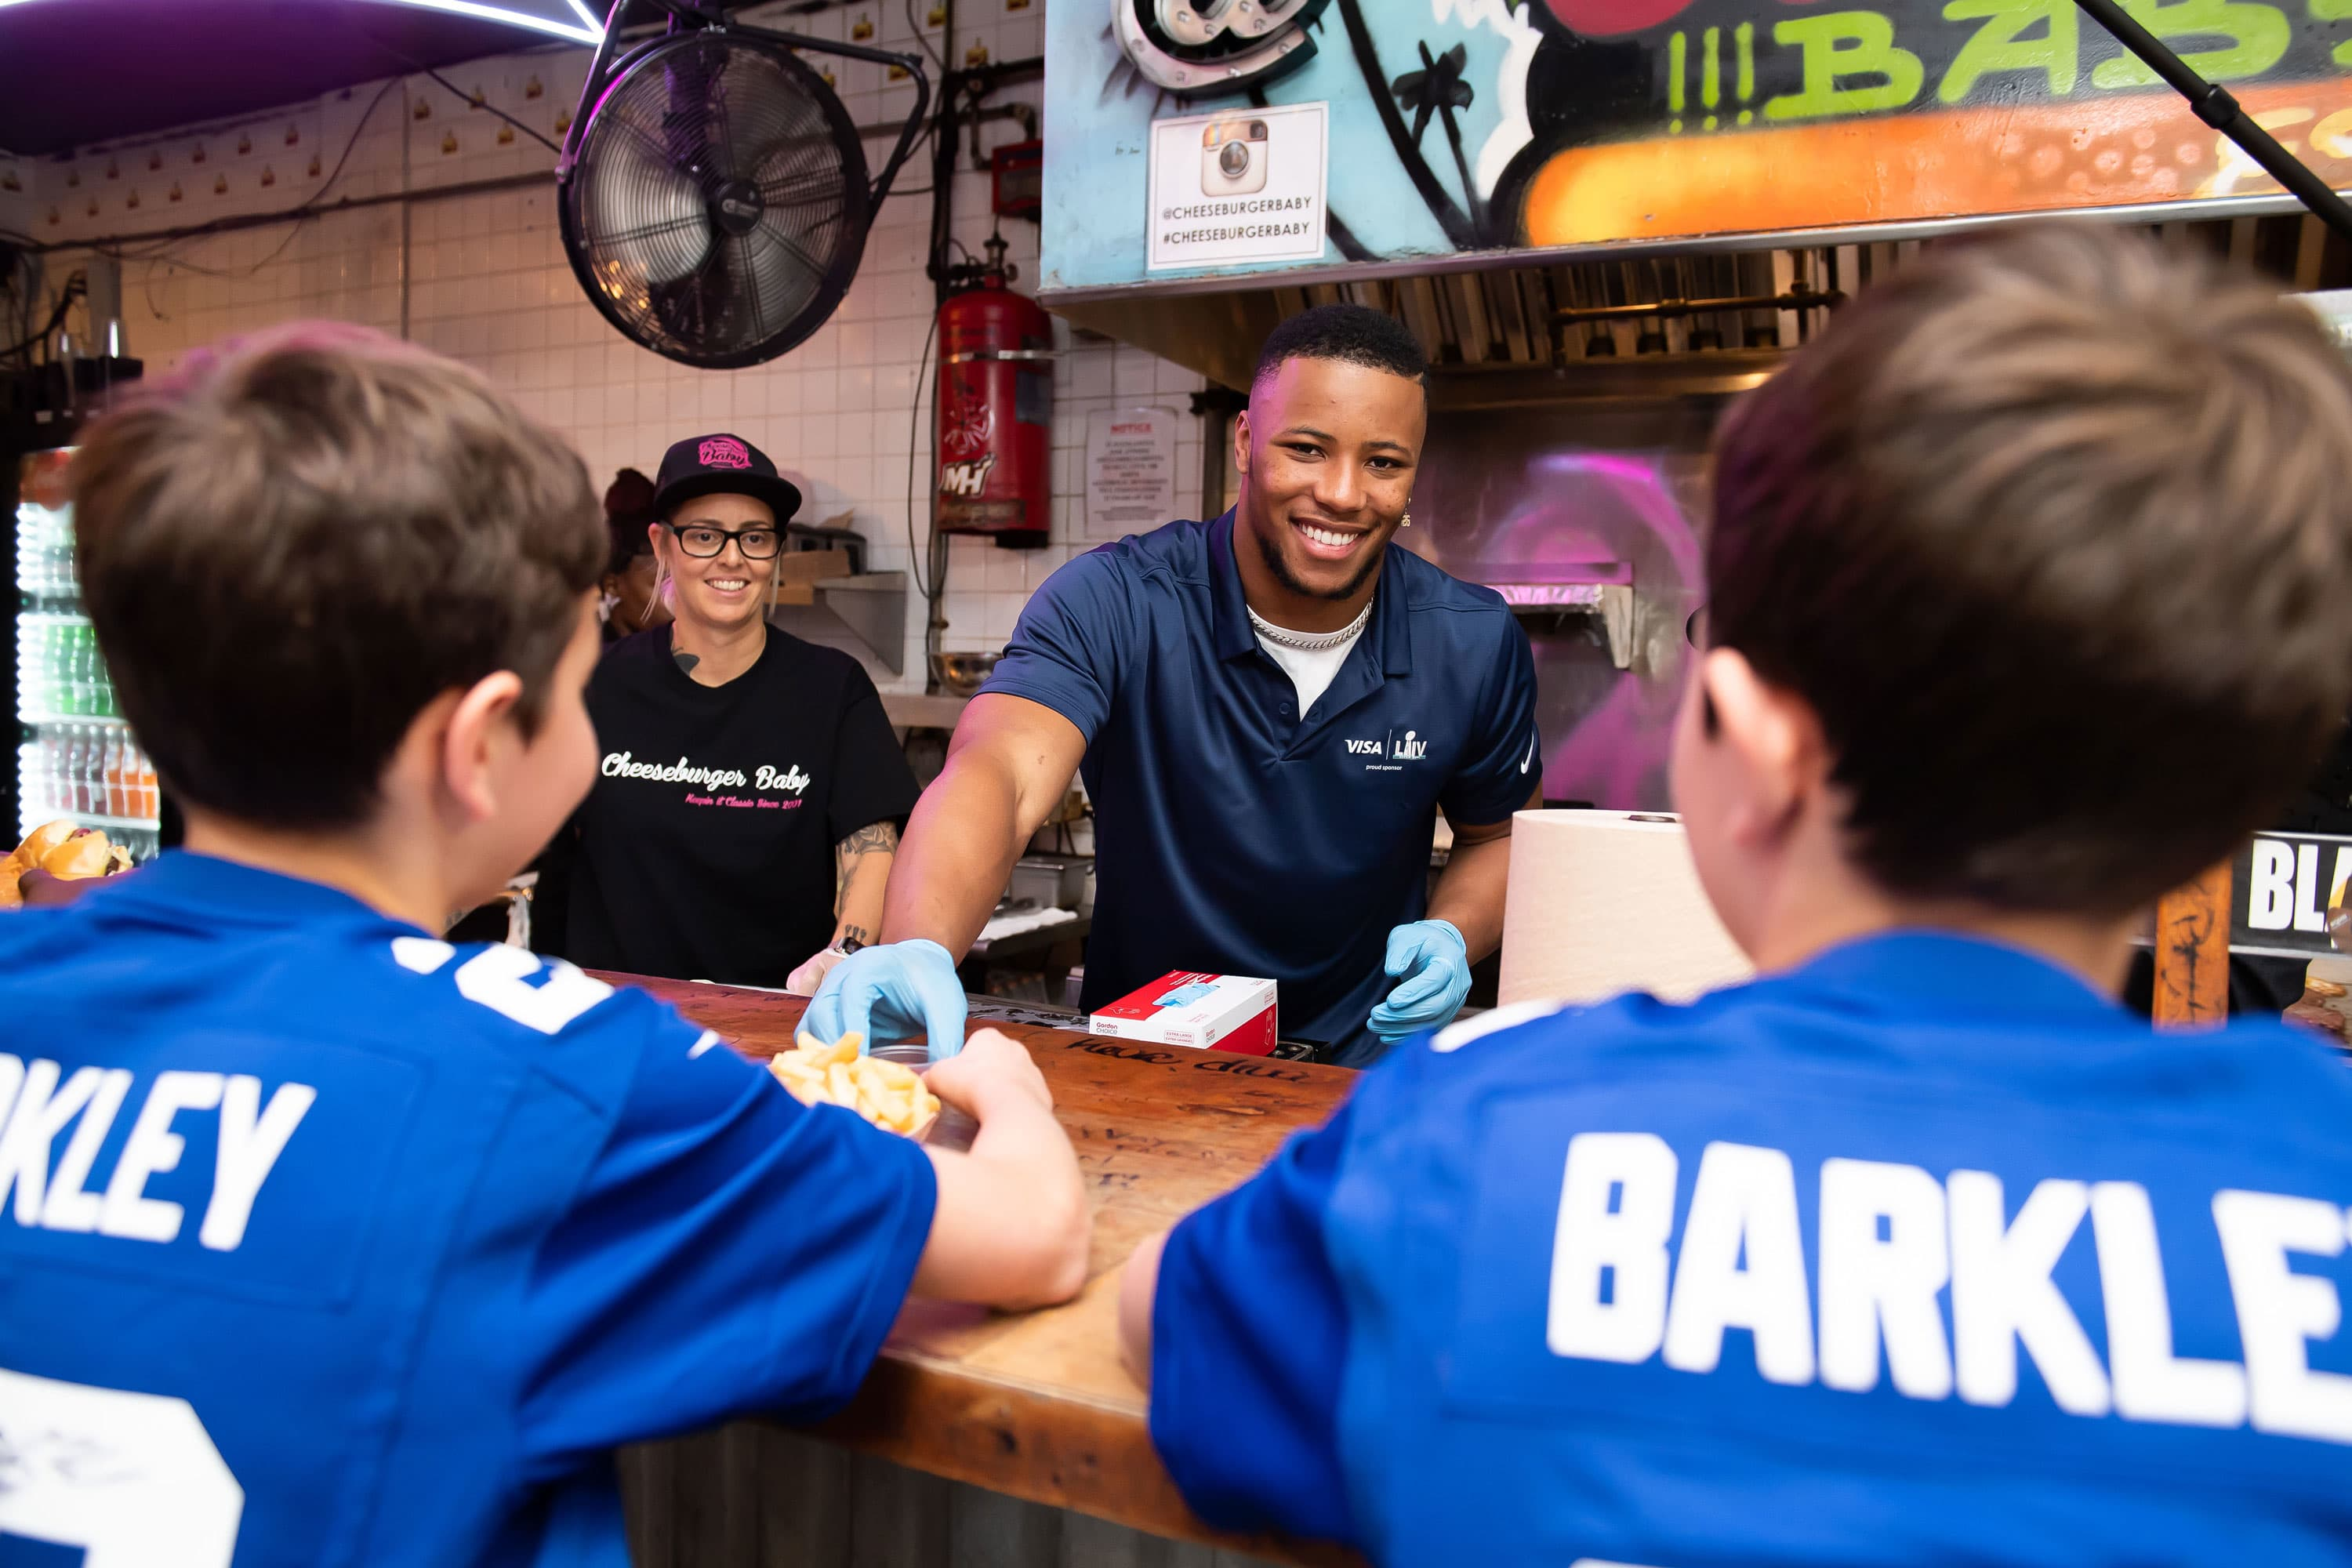 NFL star Saquon Barkley visits South Beach restaurant owner prepping Super Bowl tailgate, and gets inspired